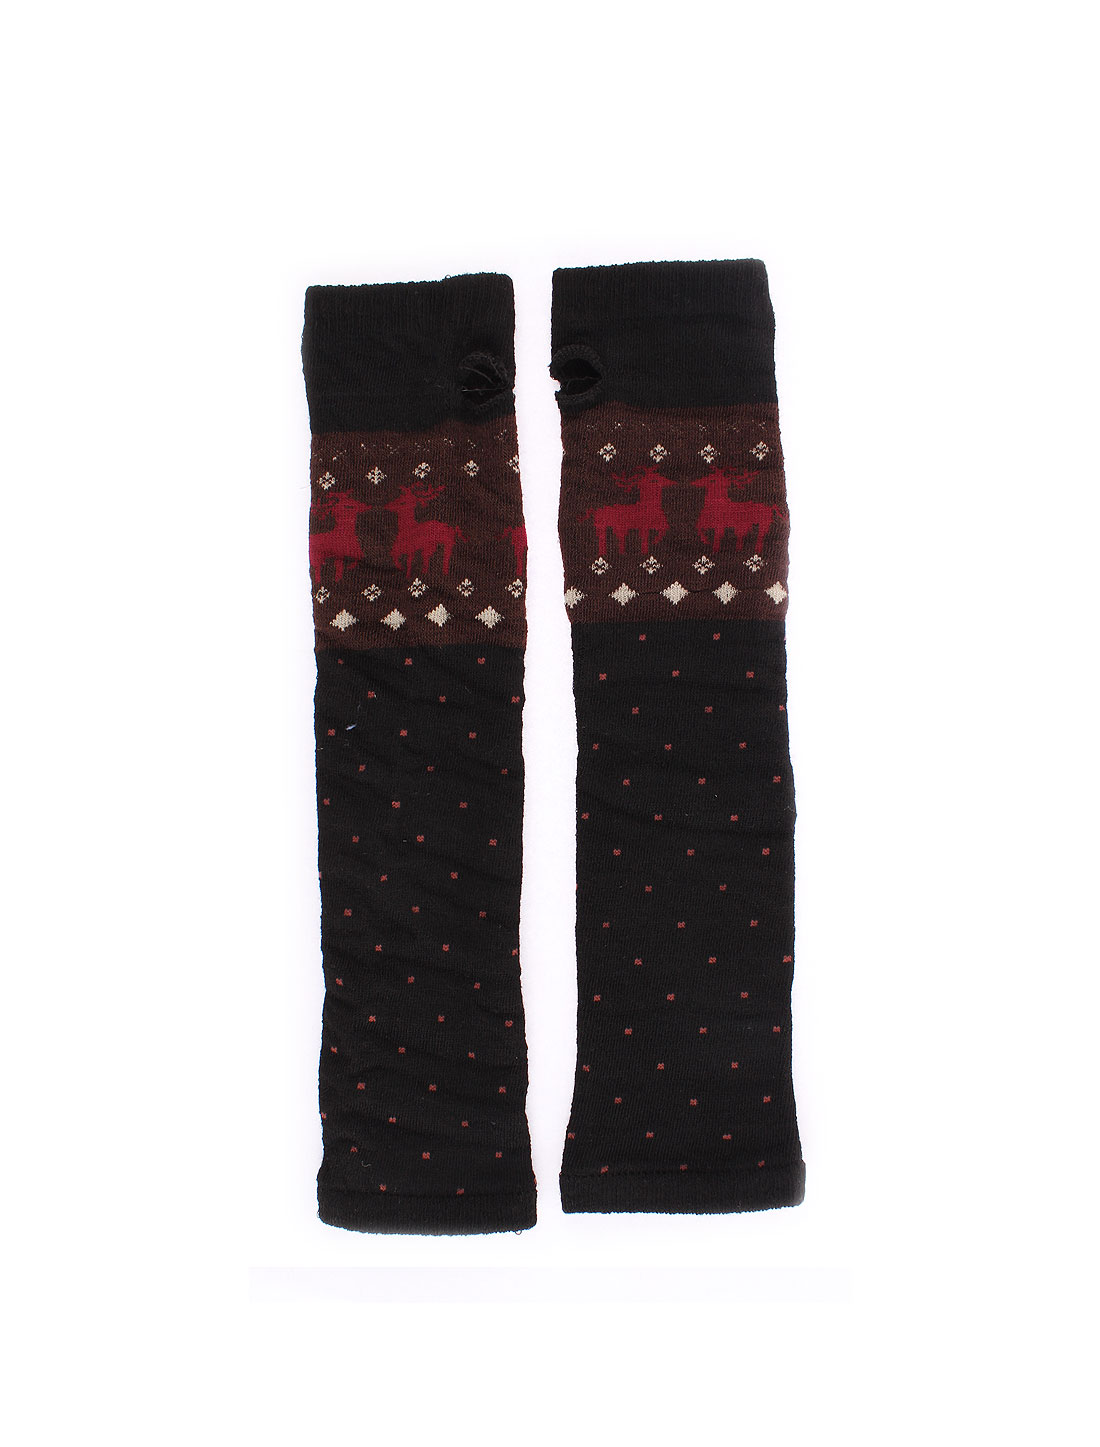 Woman Deer Pattern Stretch Wrist Arm Warmer Thumb Hole Fingerless Gloves Pair